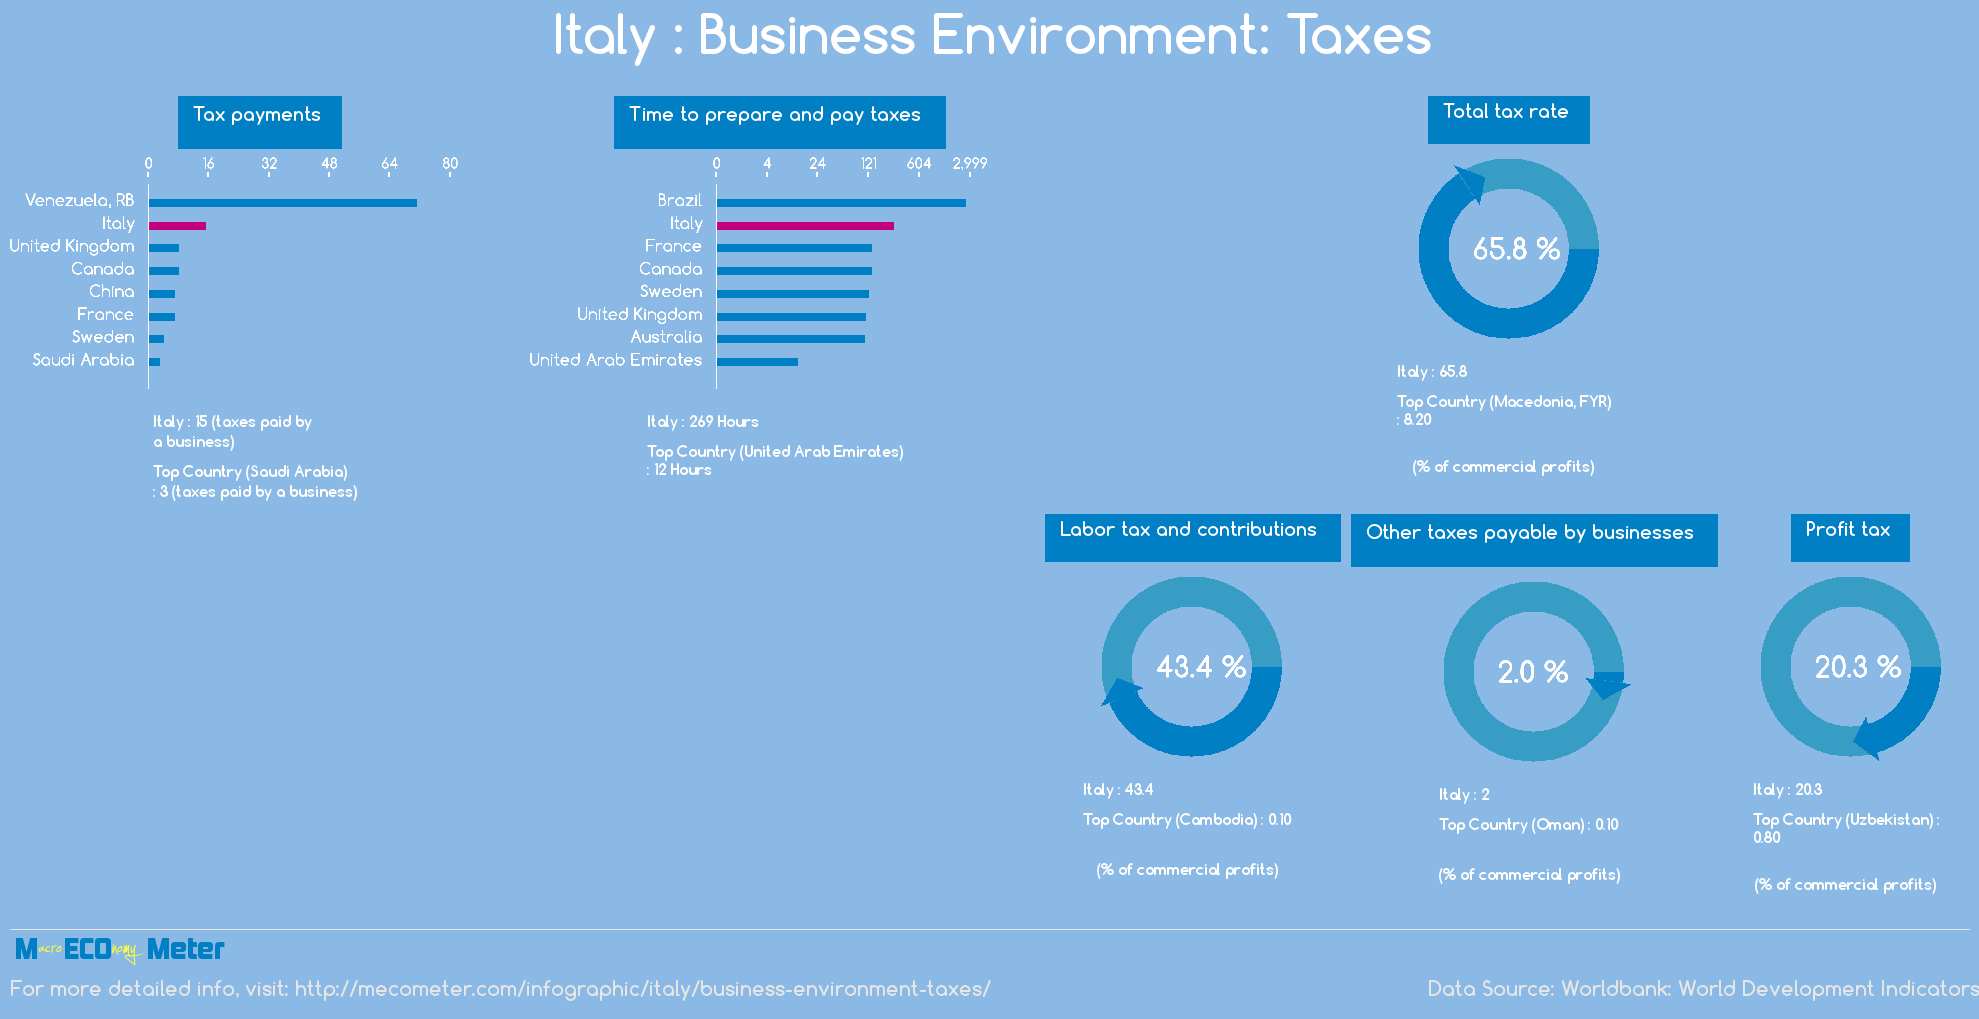 Italy : Business Environment: Taxes